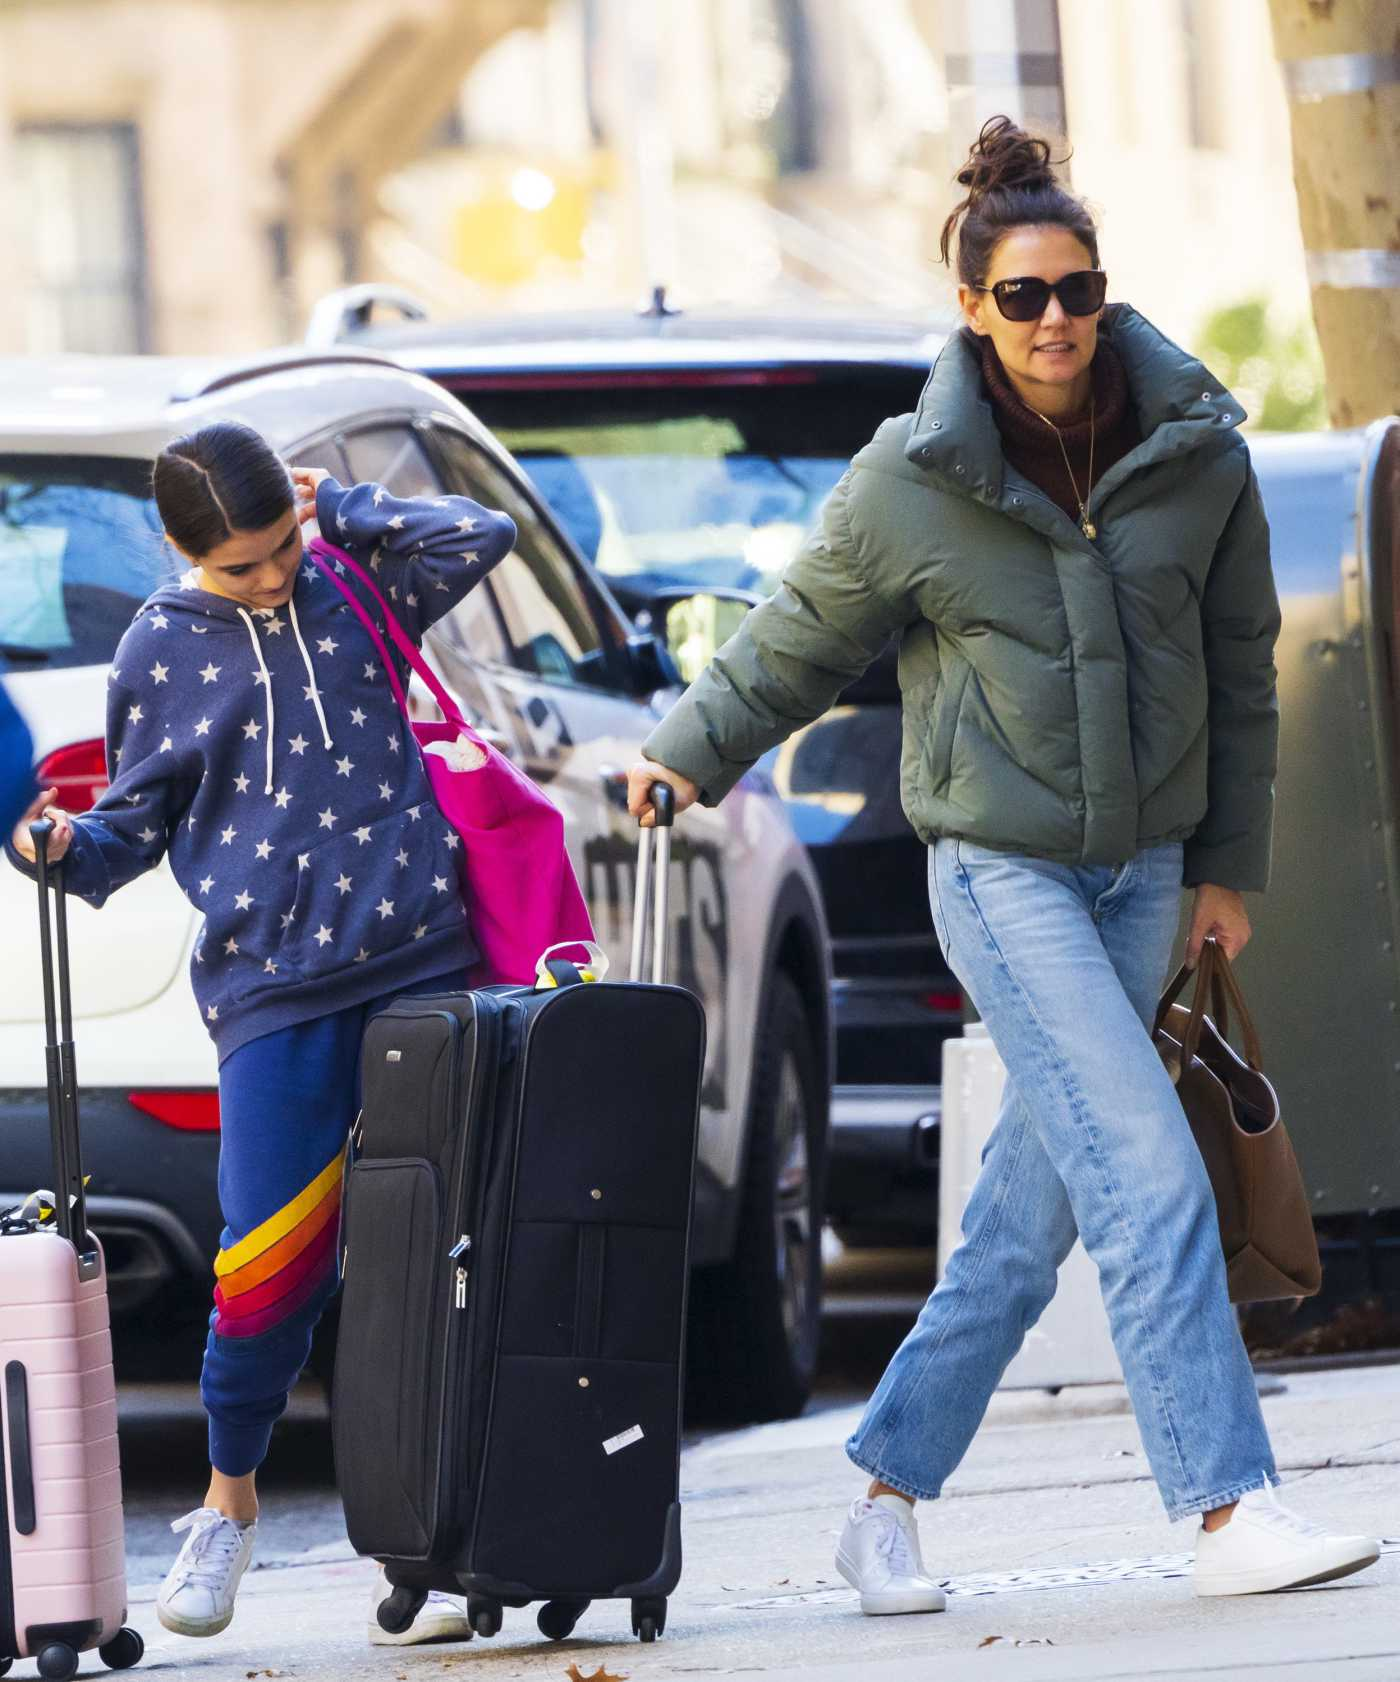 Katie Holmes in a Green Puffer Jacket Arrives at Her NYC Aapartment  Out with Suri Cruise 11/29/2019